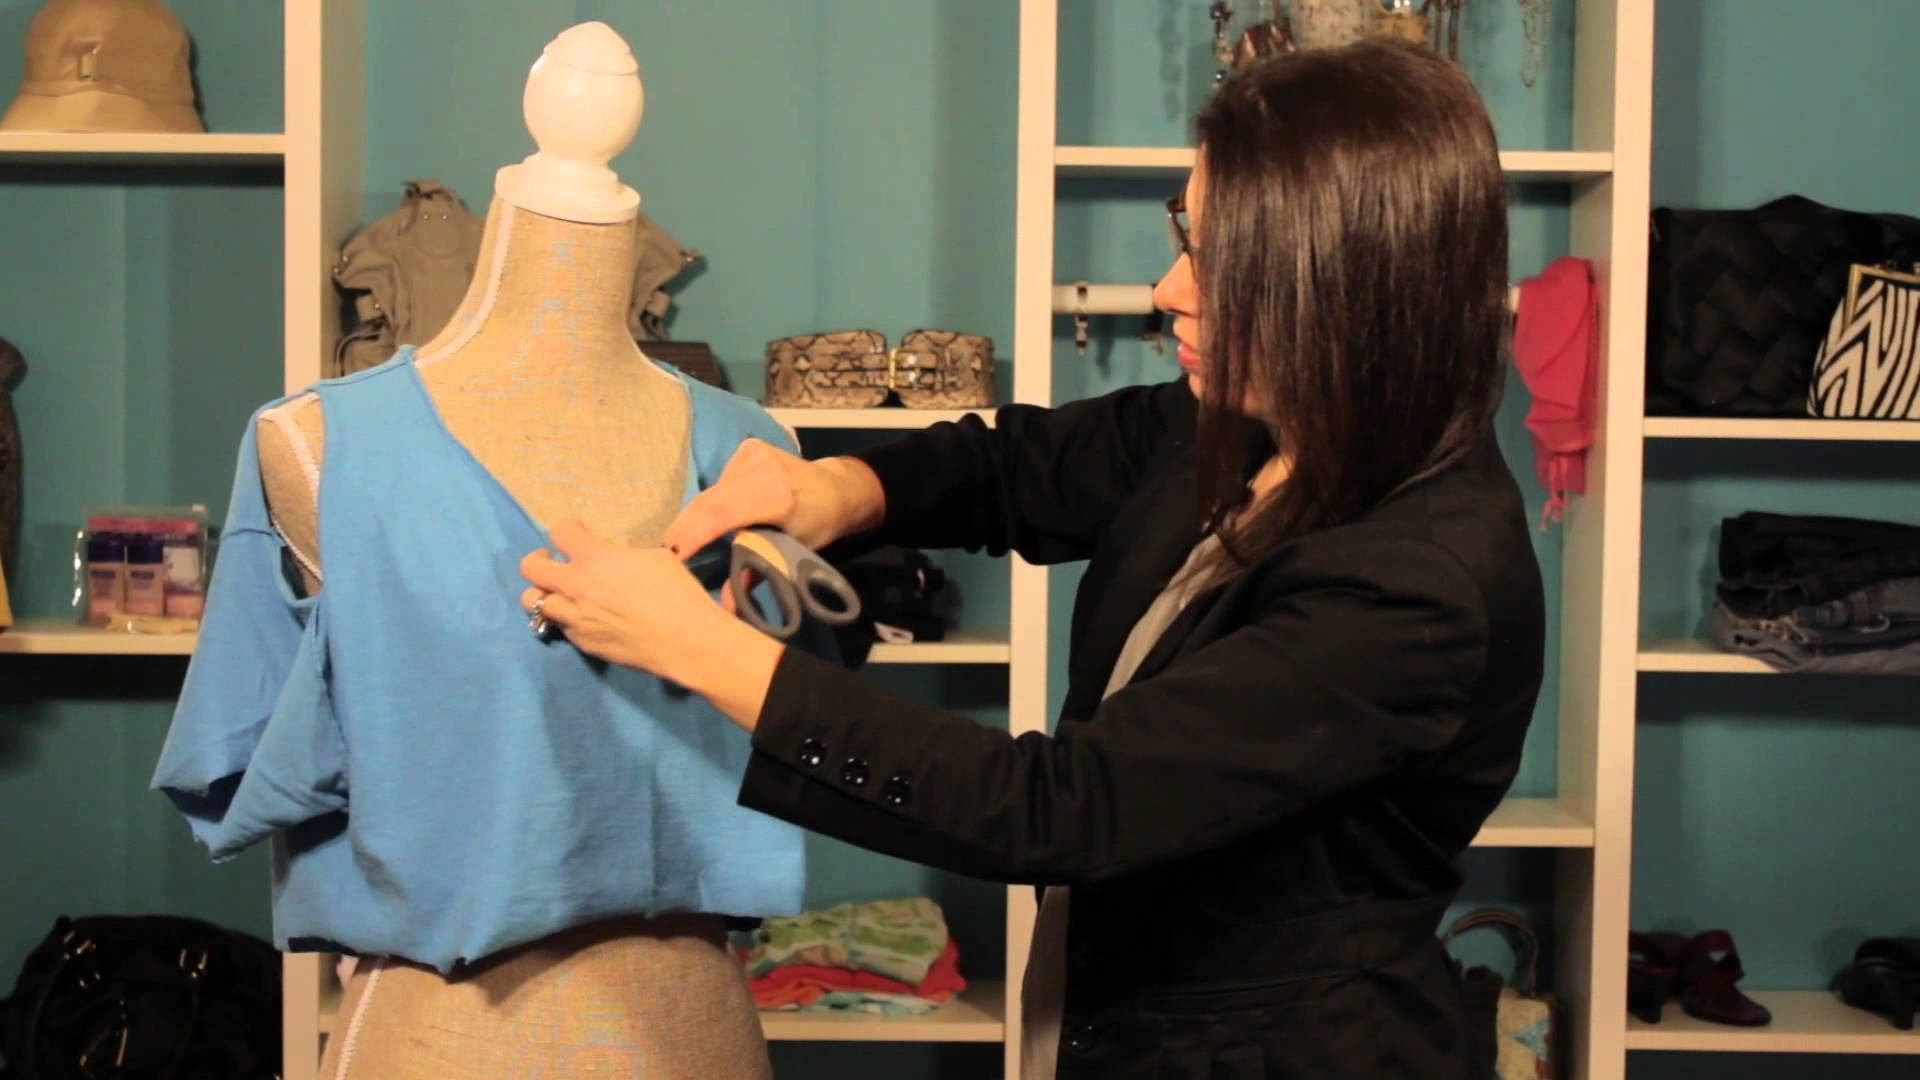 How to Rip Shirts in a Punk Way : Top Trends in Women's Fashion